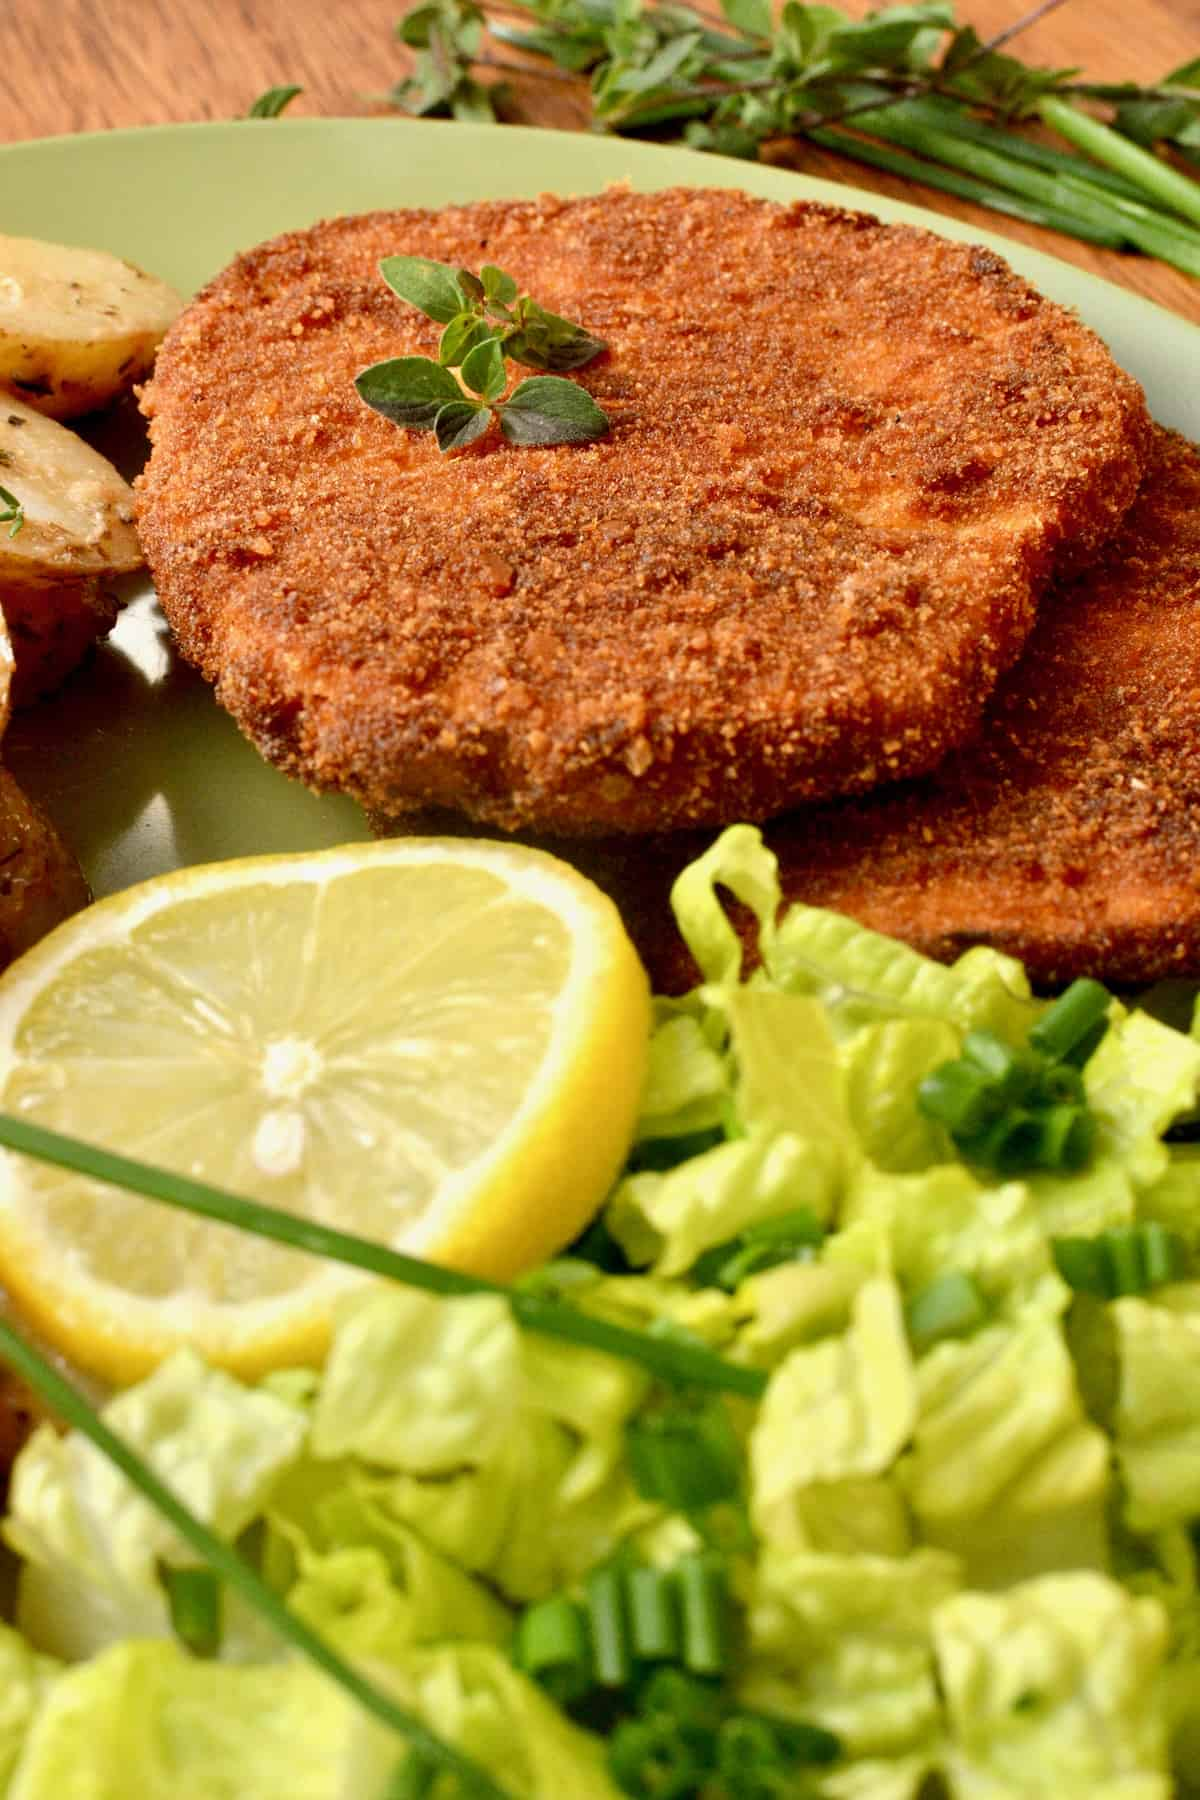 The dark golden breadcrumb crust of the schnitzel next to a slice of lemon and green salad.